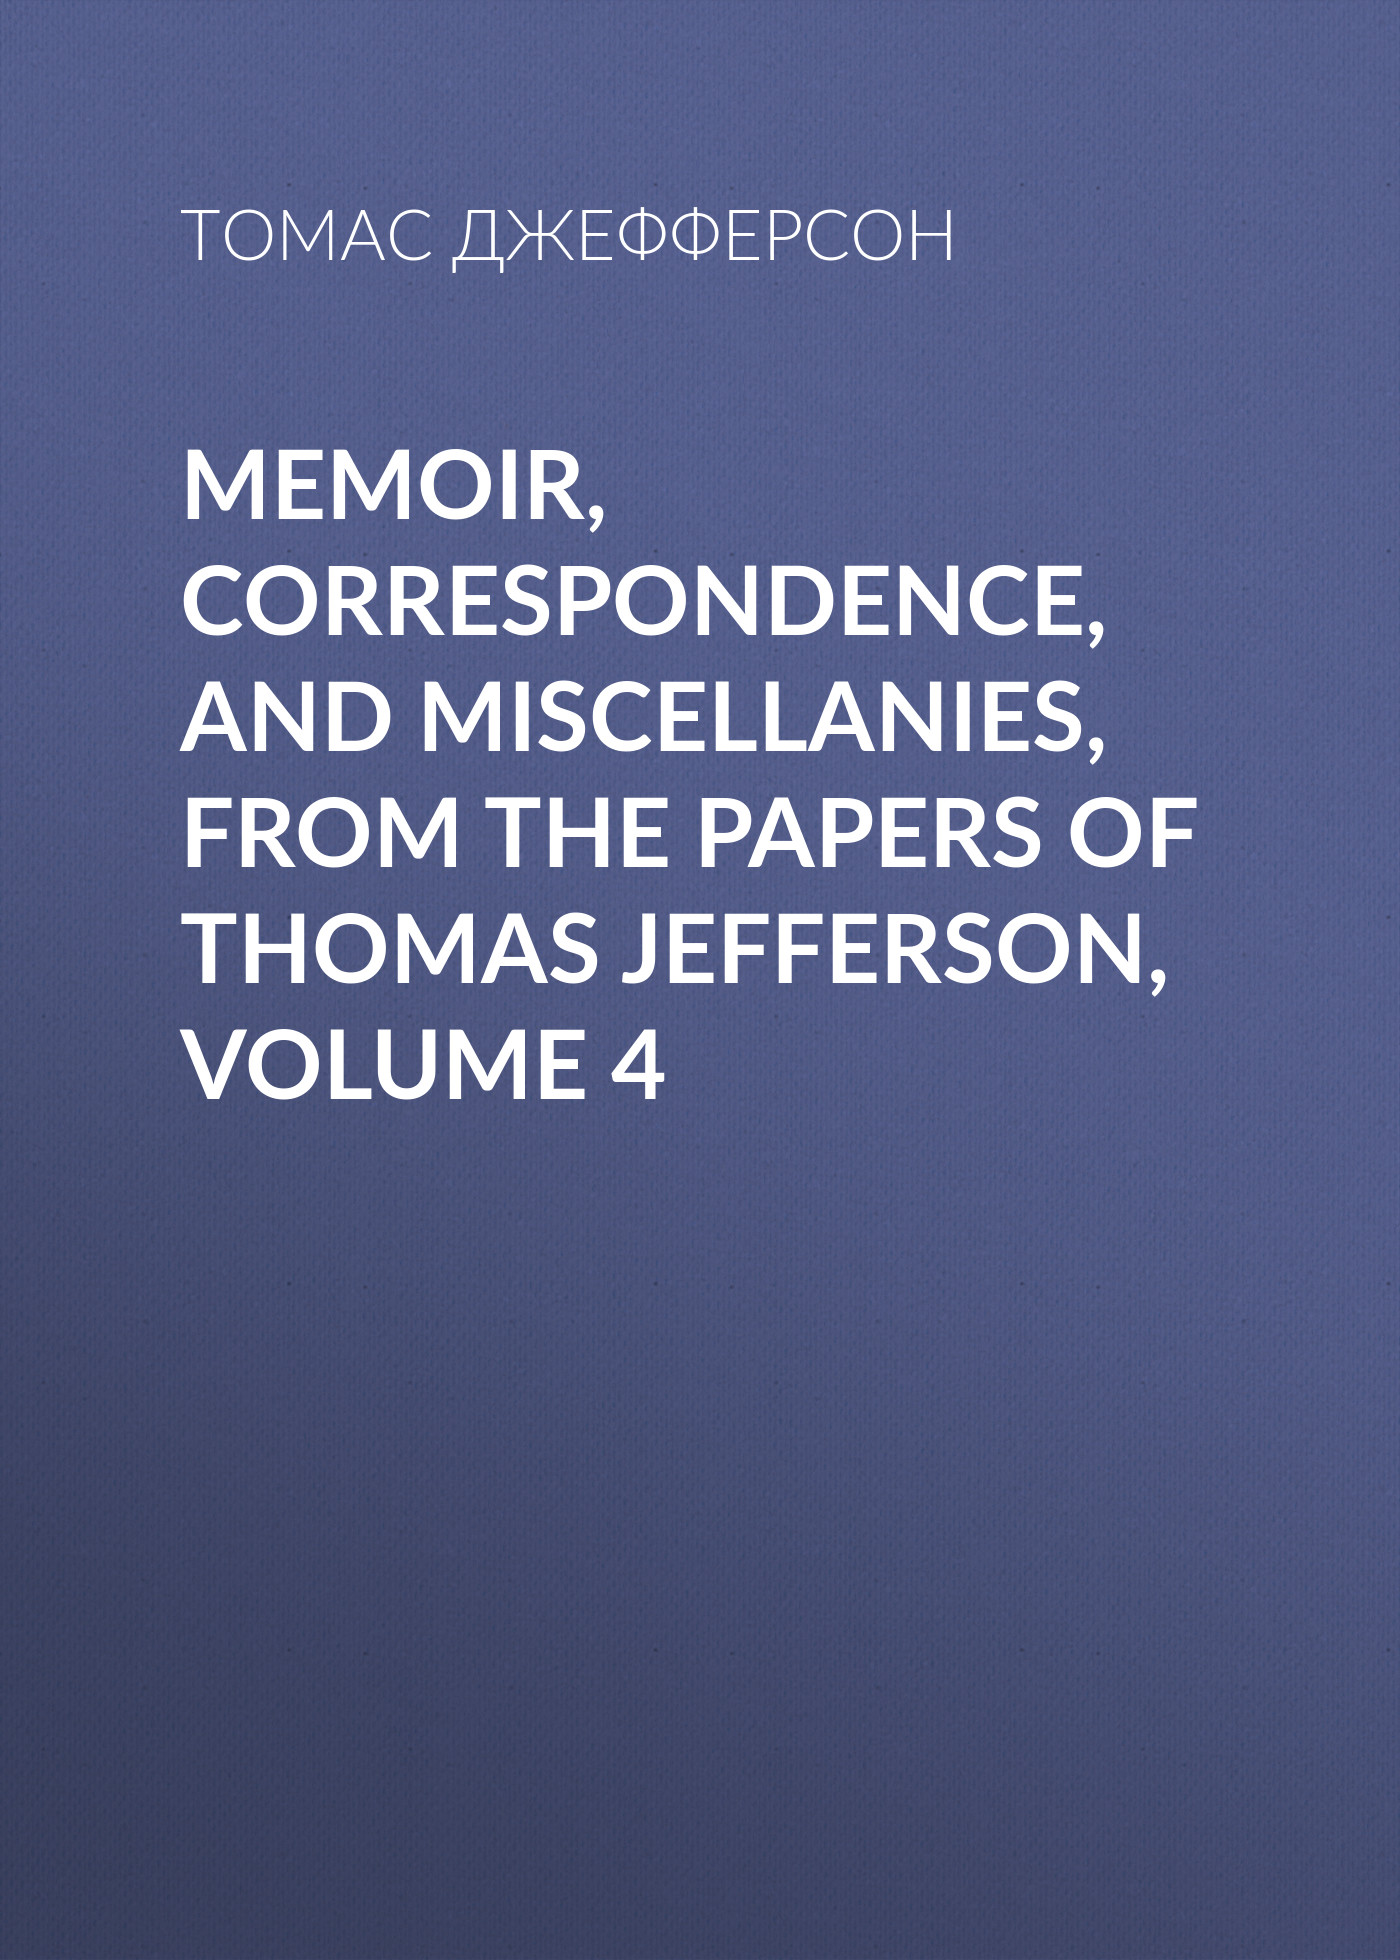 Томас Джефферсон Memoir, Correspondence, And Miscellanies, From The Papers Of Thomas Jefferson, Volume 4